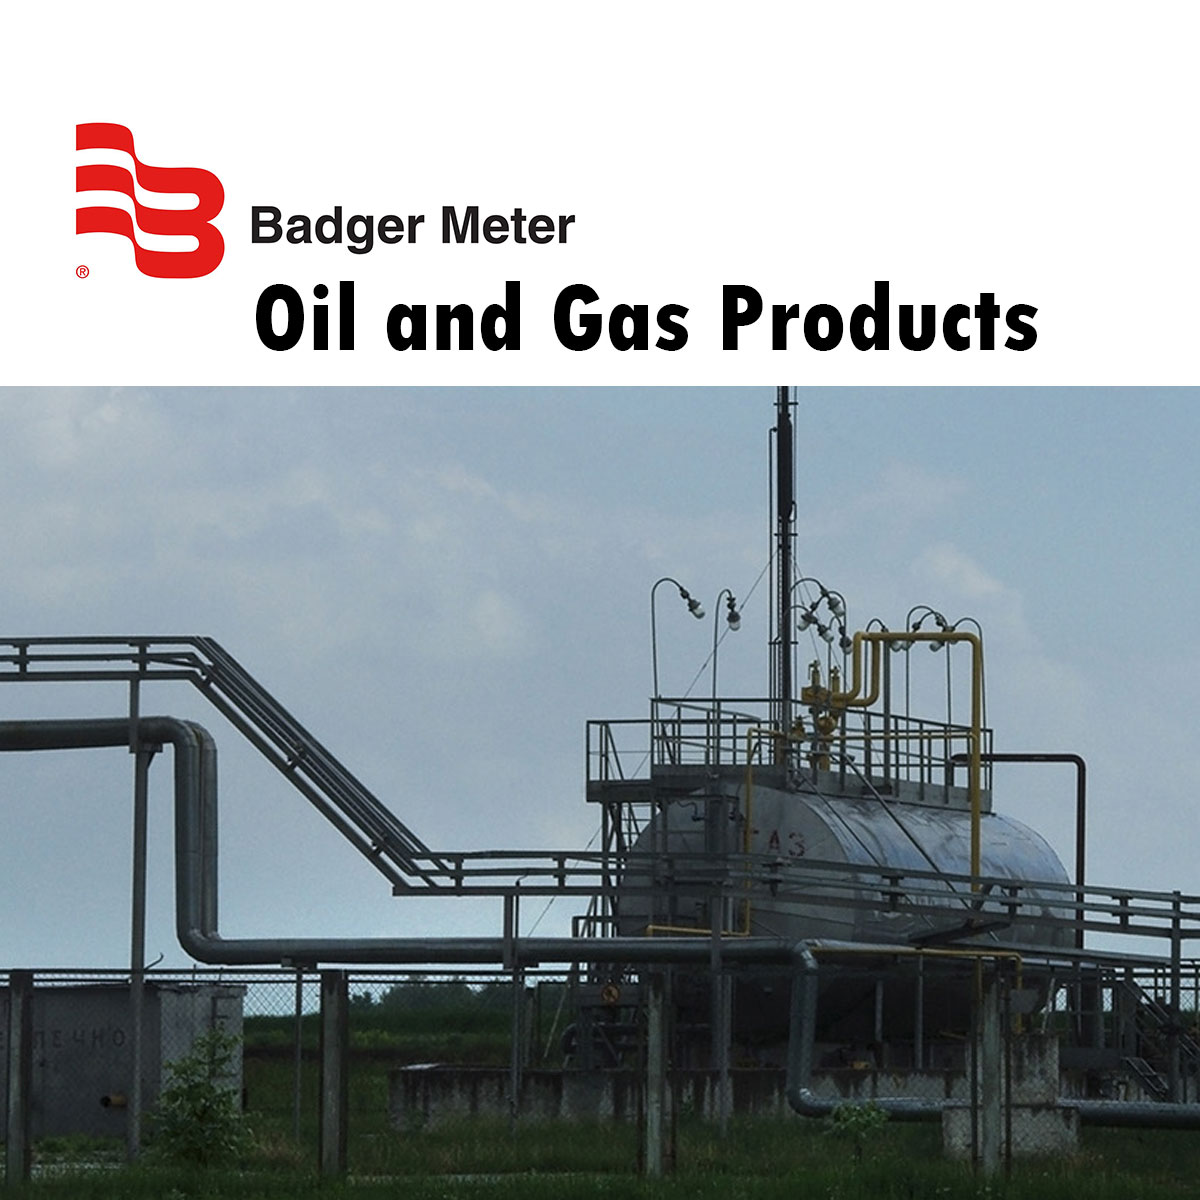 Natural Gas Well Meter : Badger meter oil and gas products central california